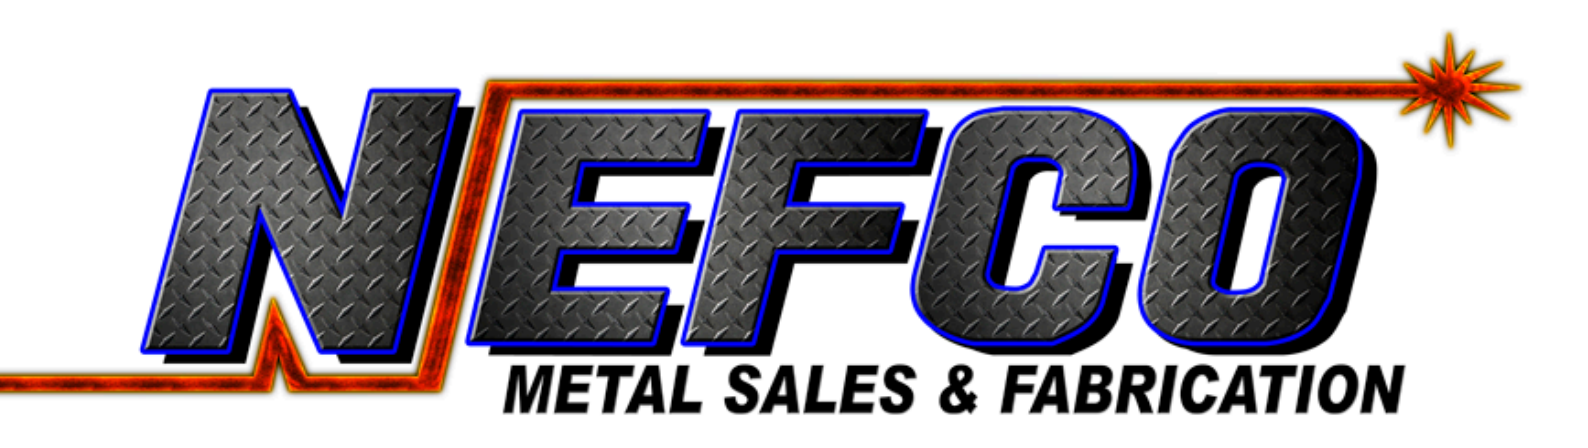 NEFCO Top 360 Award for 2019 SOD races